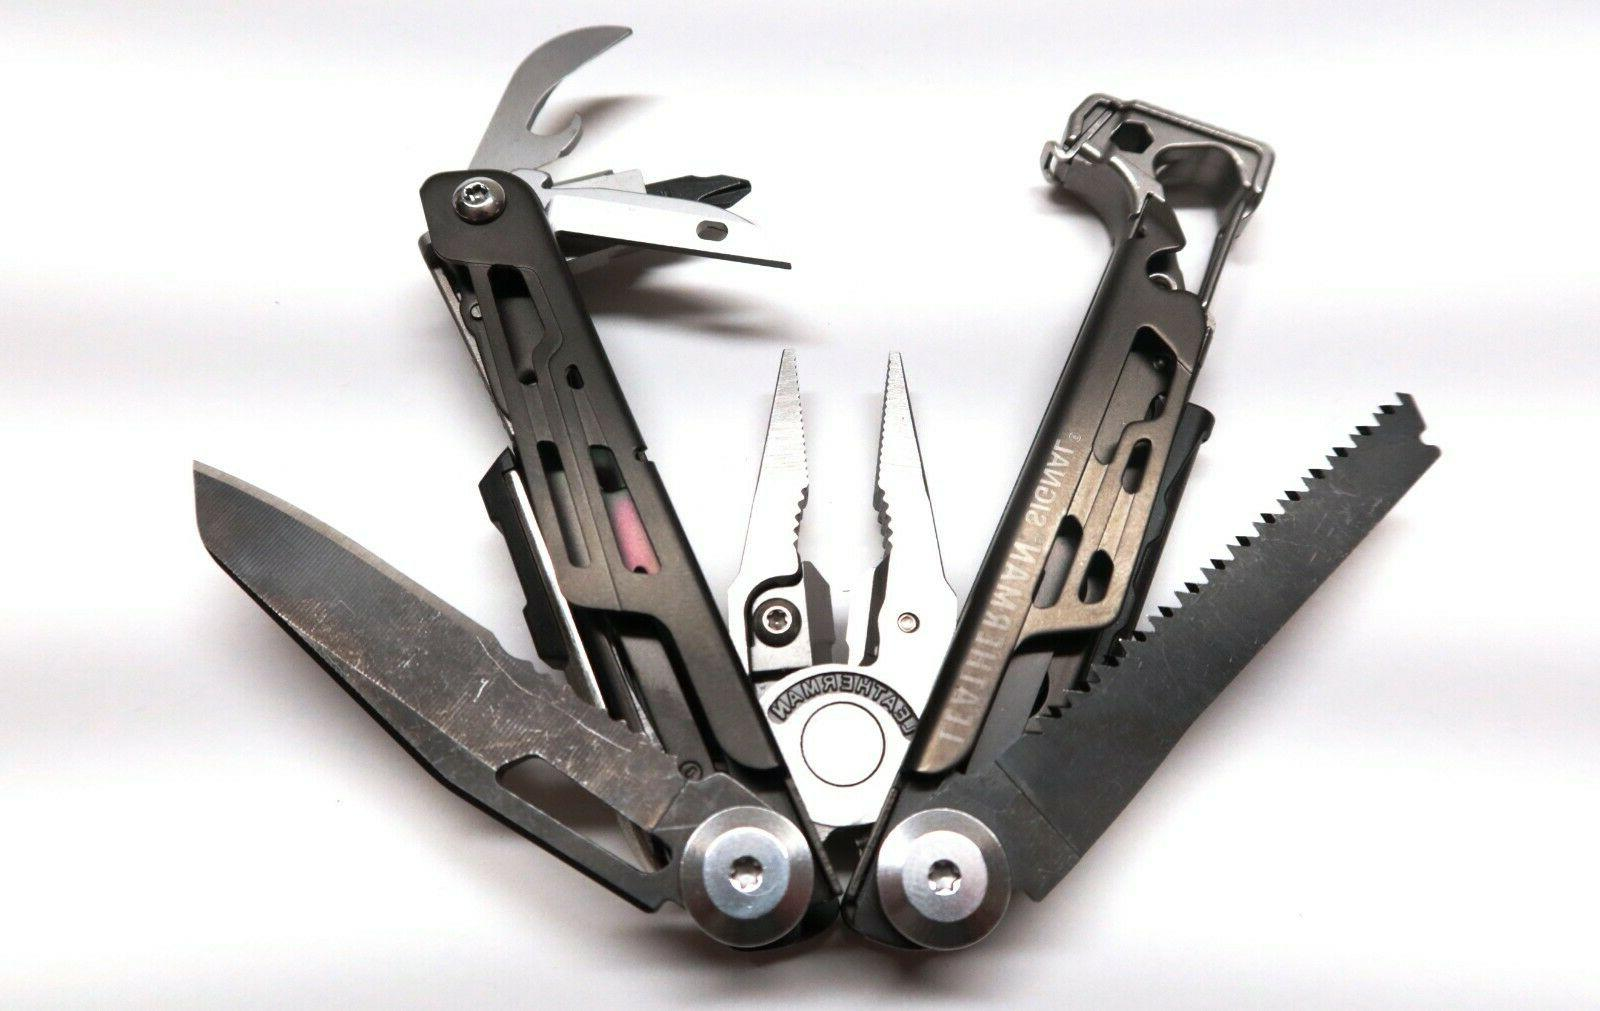 Leatherman Multi-Tool Tools with Nylon